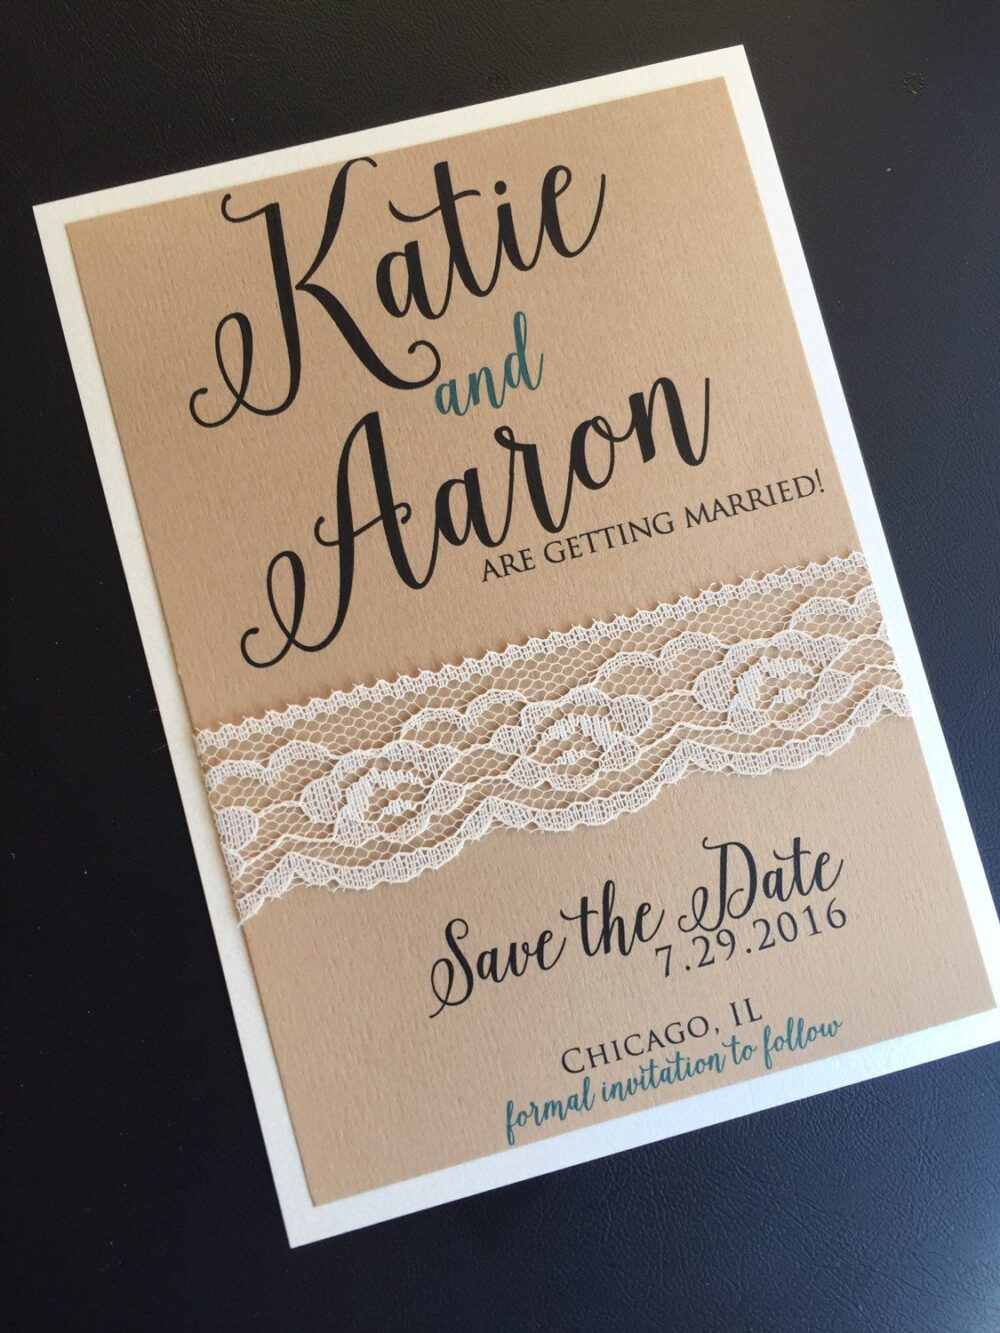 Lace Wedding Save The Date, Dates, Rustic Wedding, Shabby Chic Vintage, Invitation, Lace, Kraft Paper